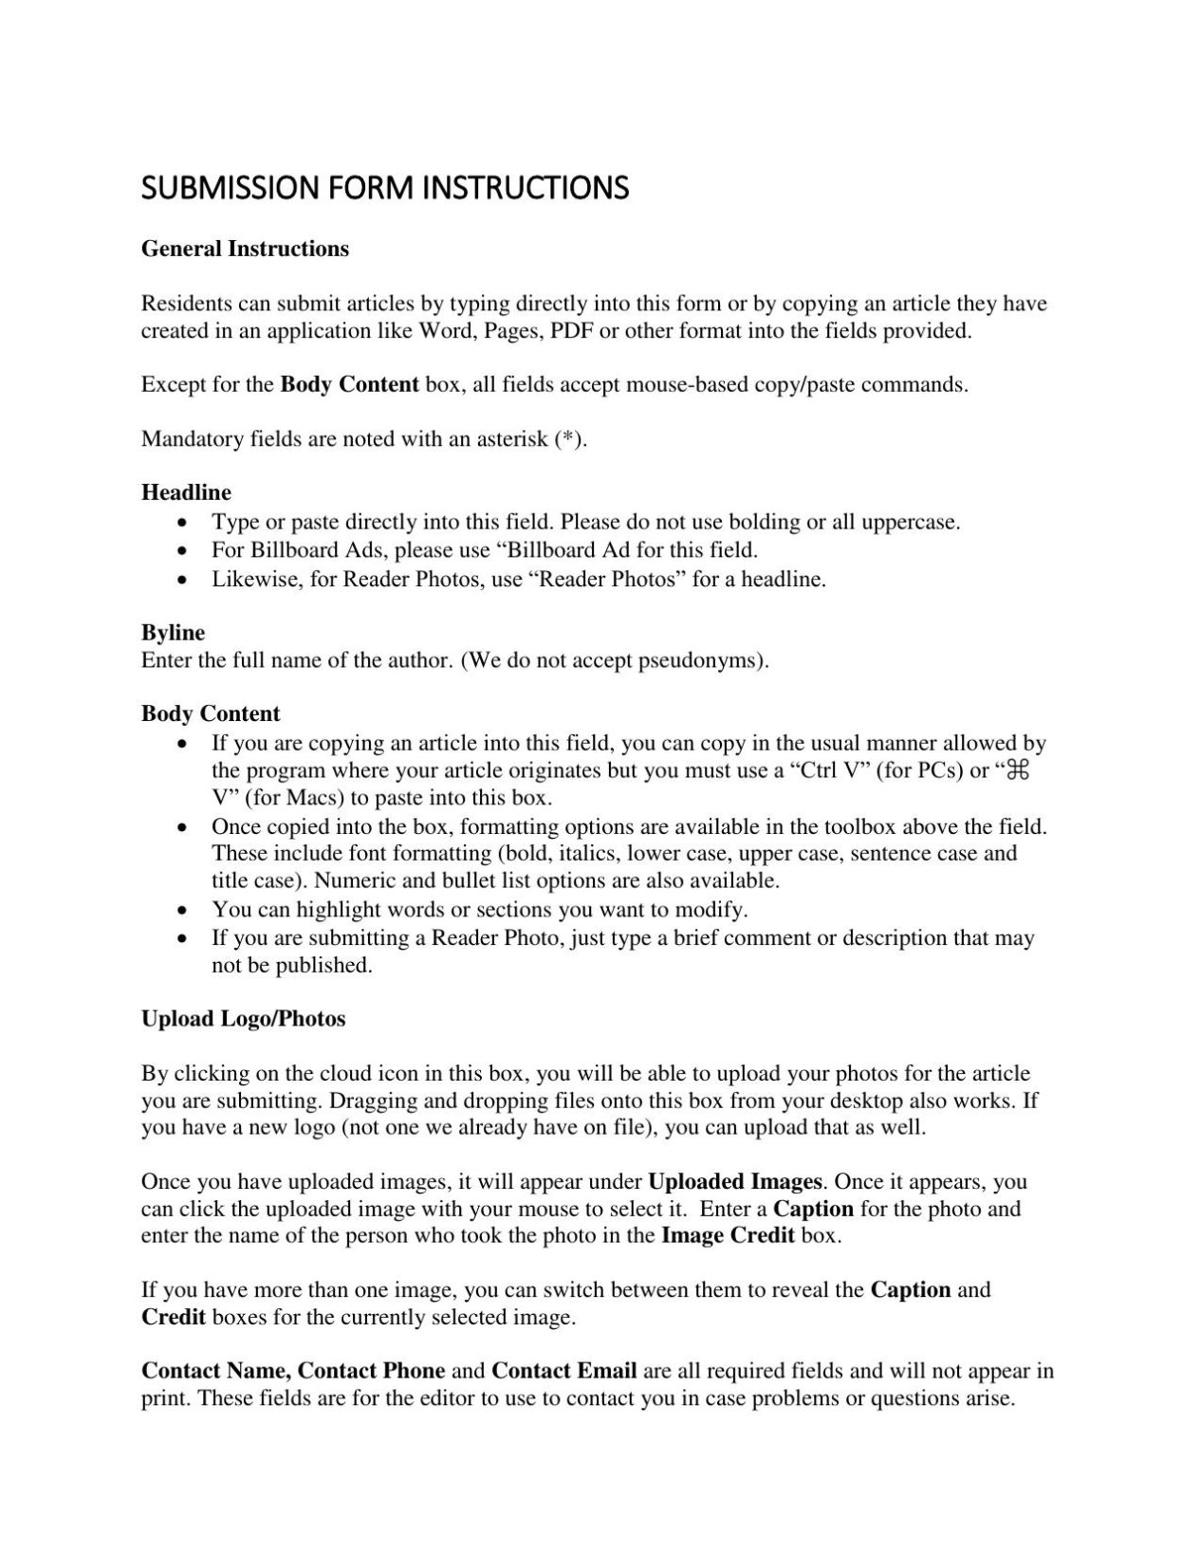 Saddlebag Notes Submission Form Instructions